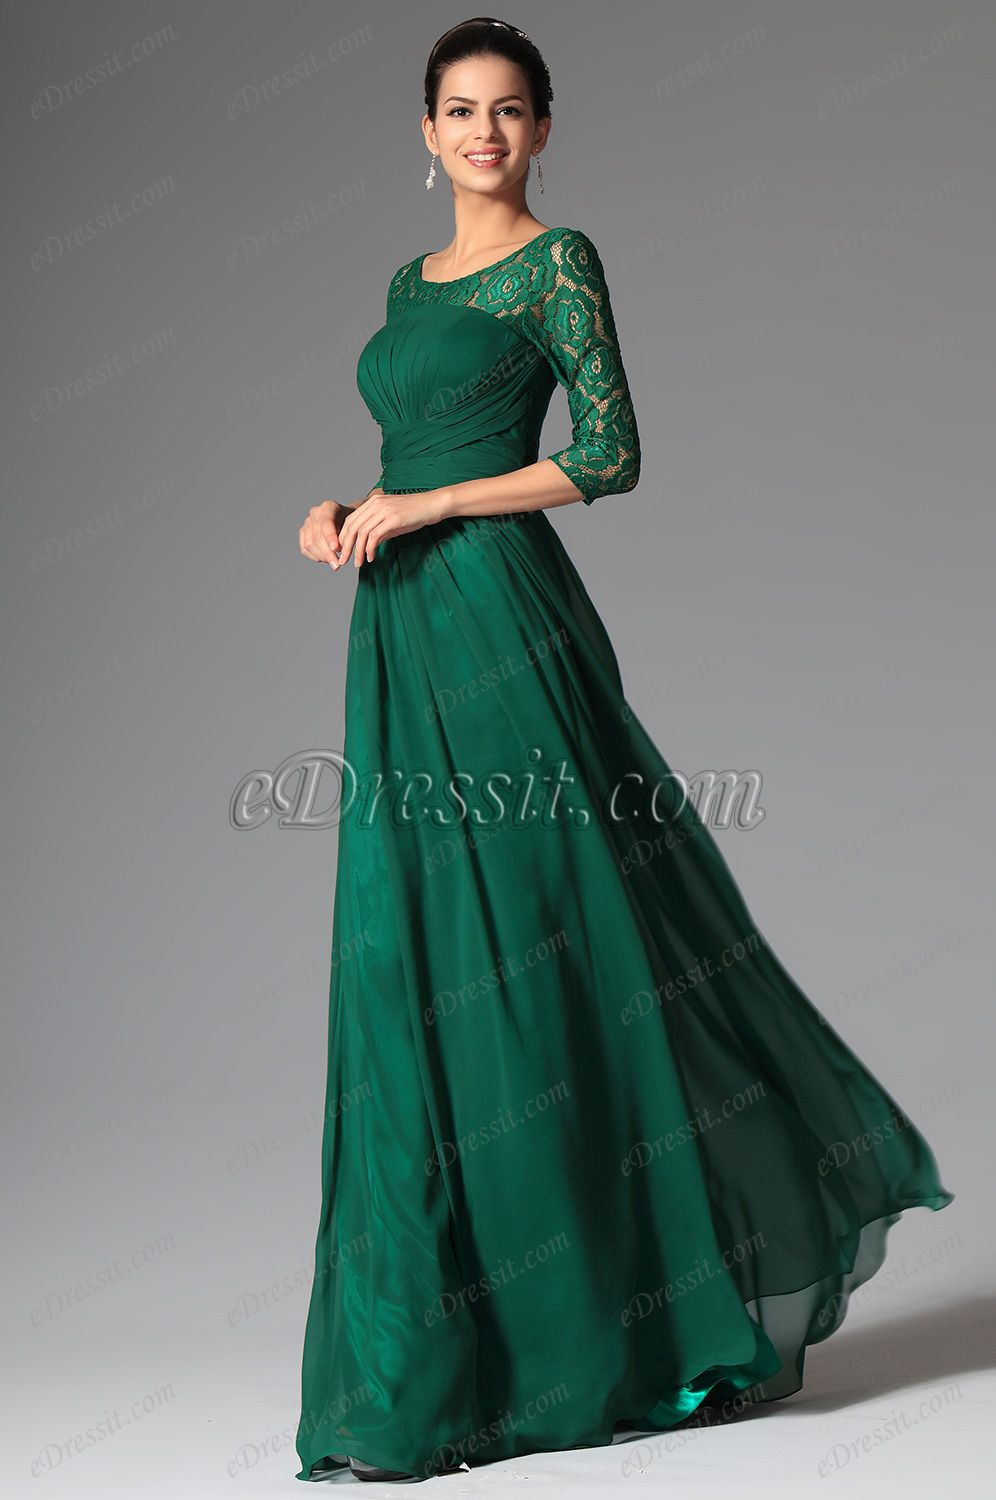 Elegant Lace Sleeves Dark Green Mother Of The Bride Dress 26148204